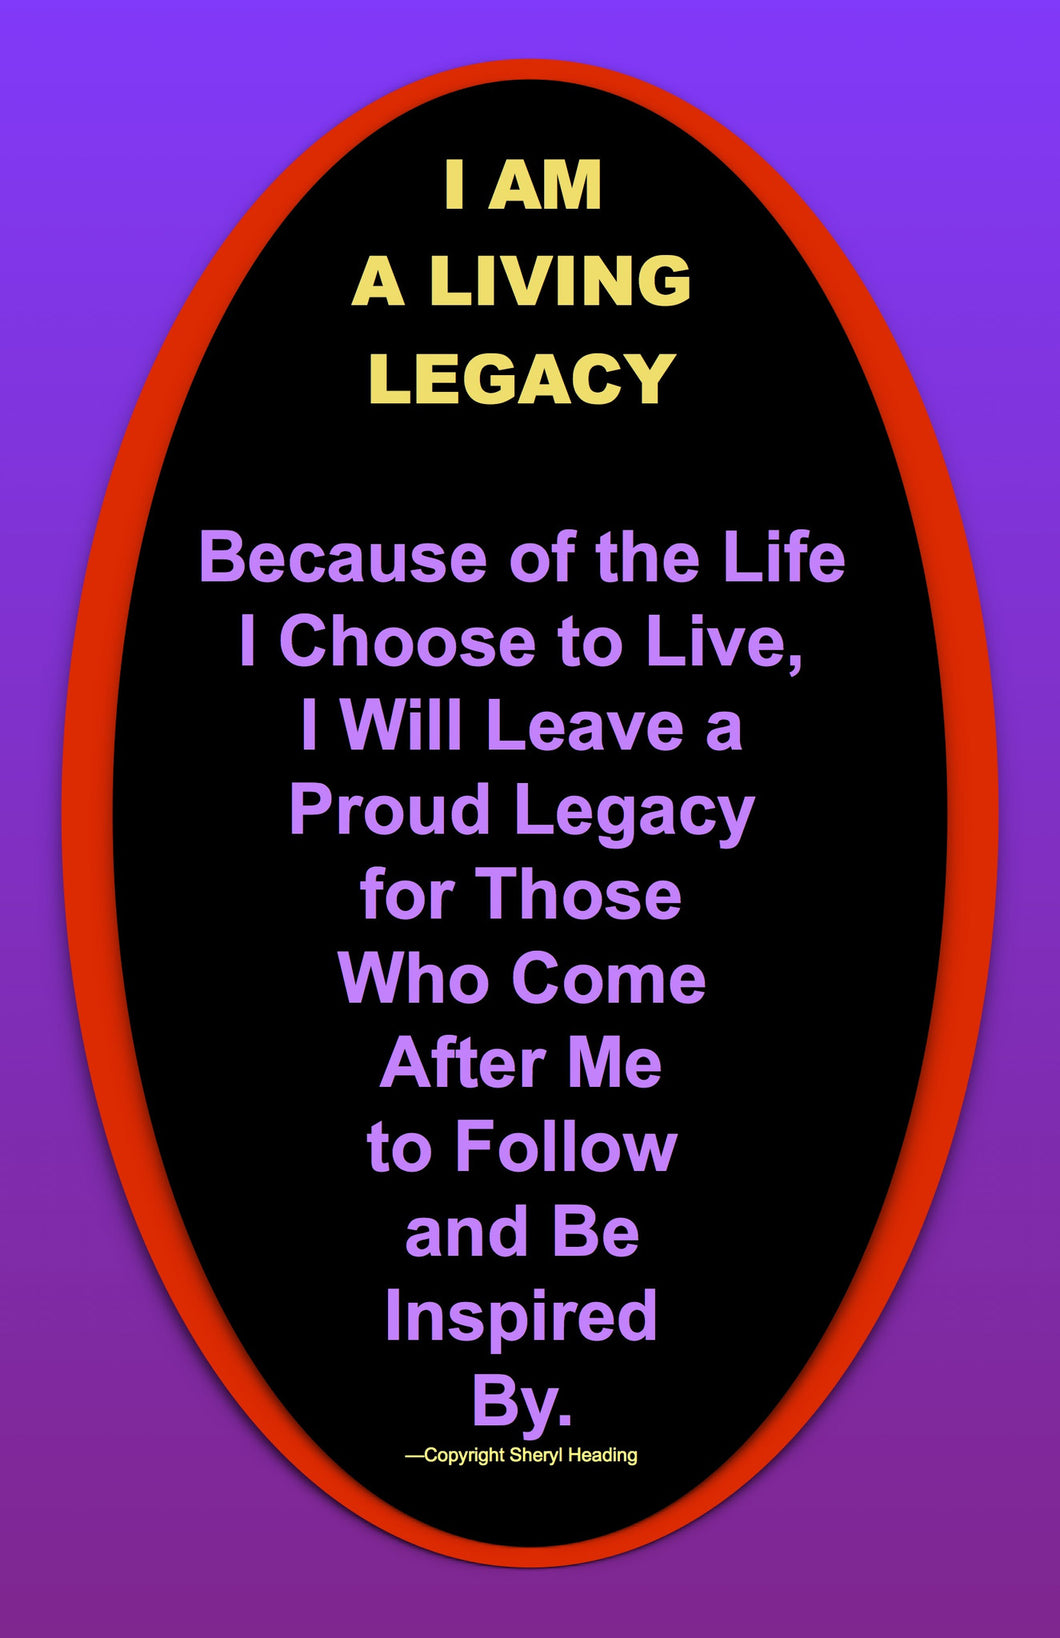 I Am A Living Legacy--Because of the Life I Choose to Live Poster - Sheryl Heading Designs